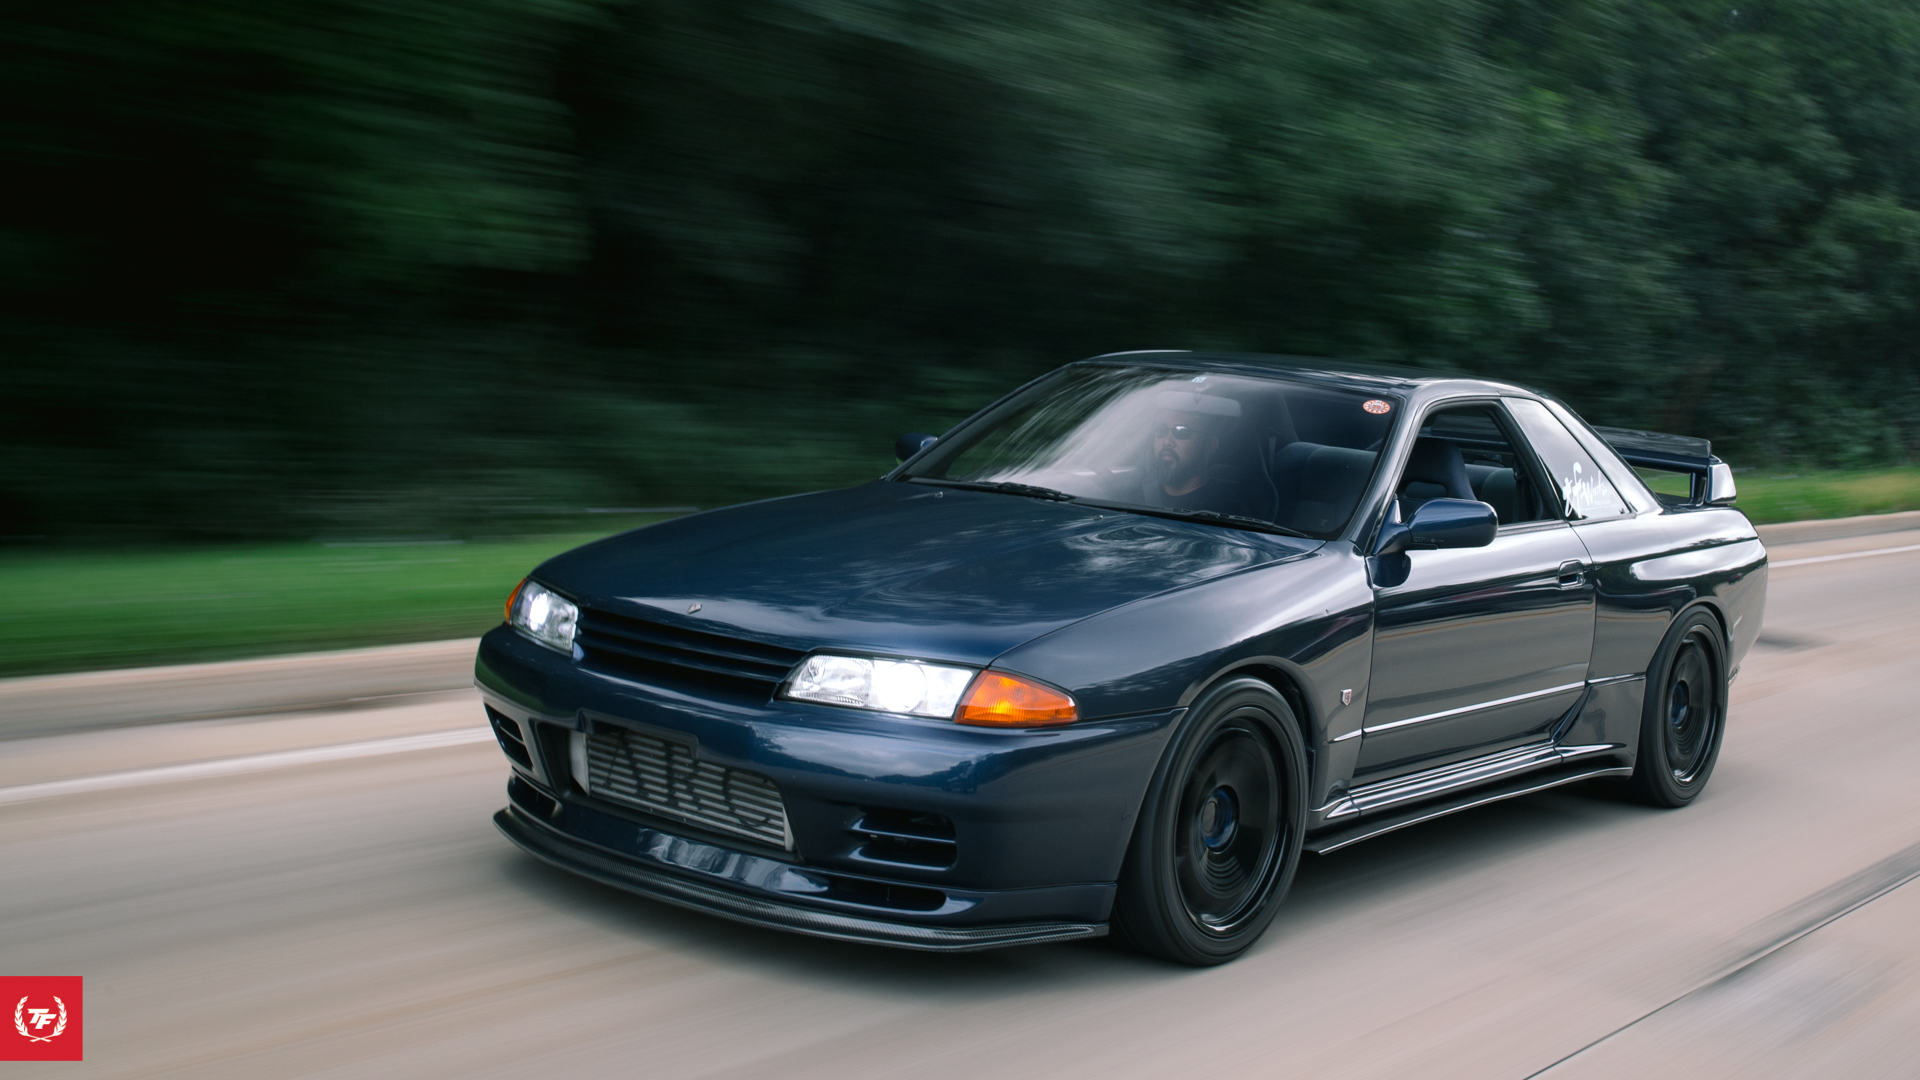 Project Update: R32 GTR - Part 4 - TF-Works Blog